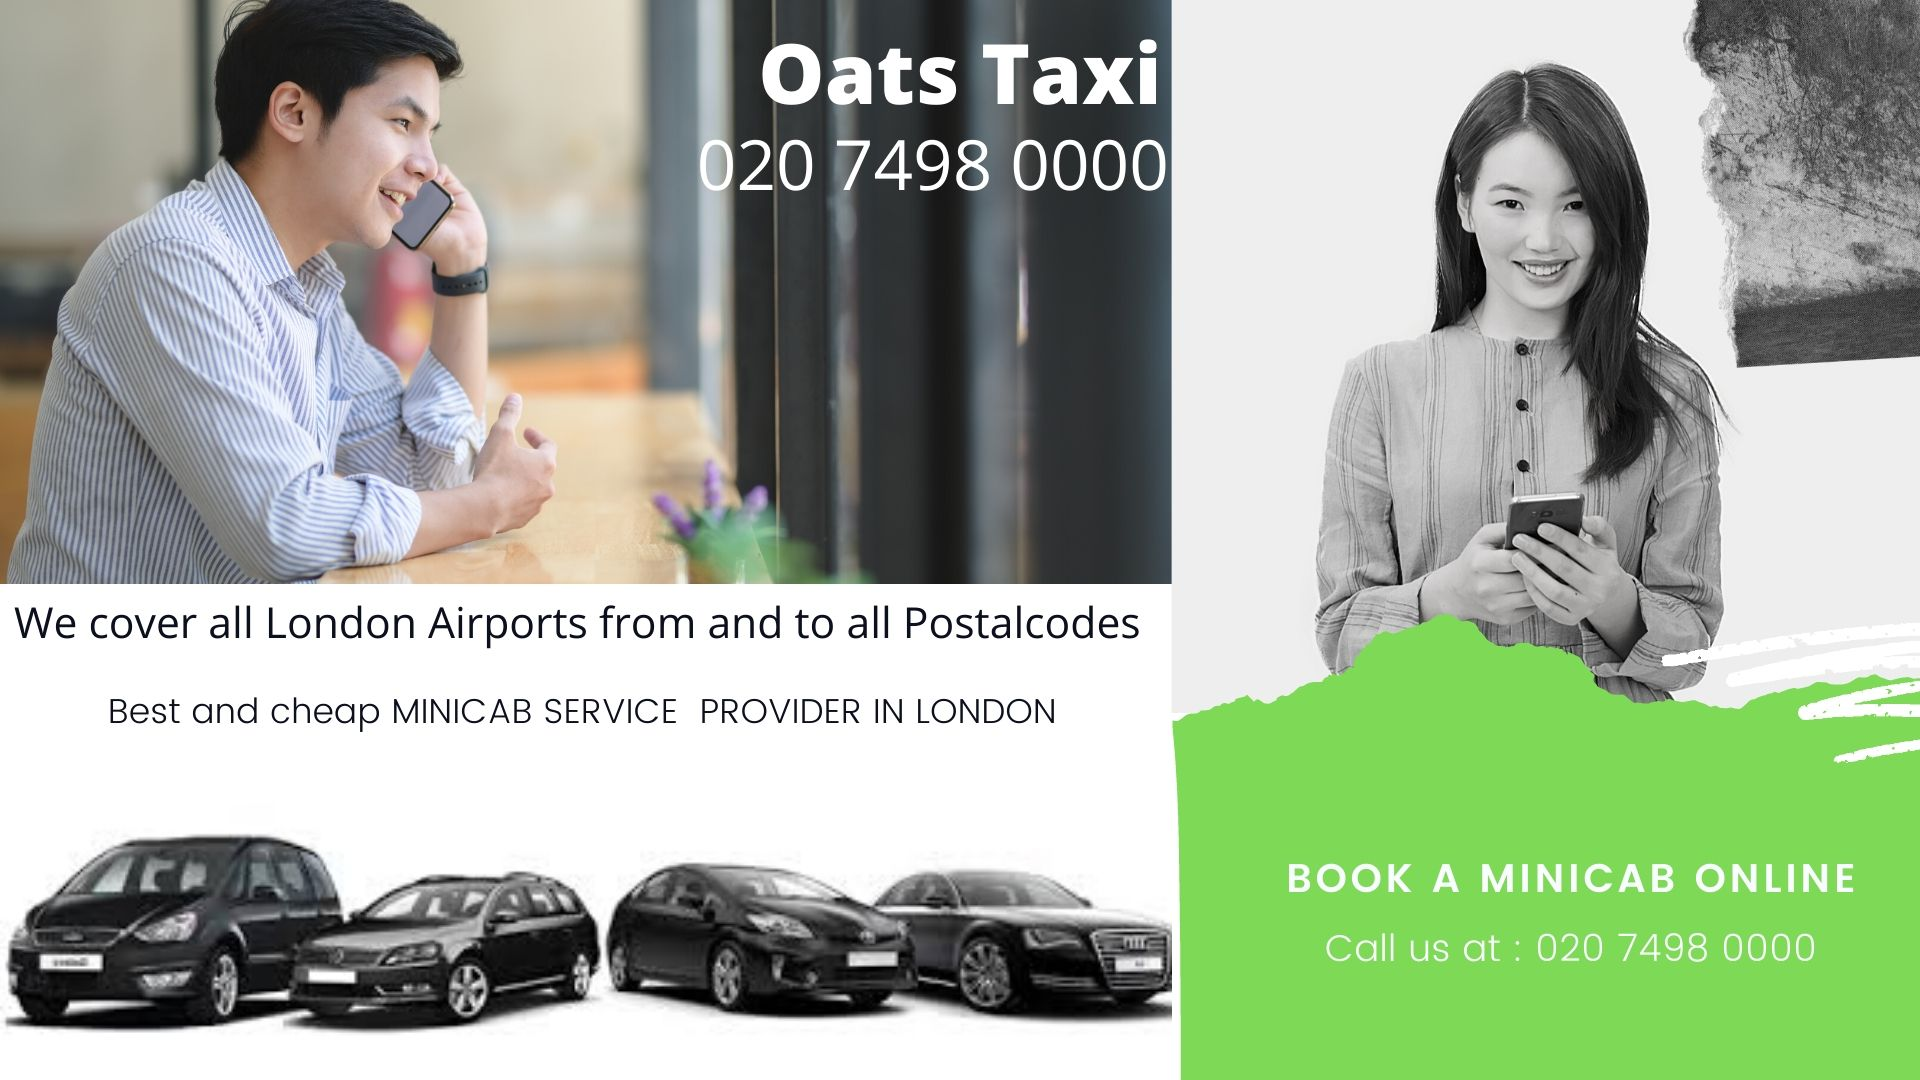 Taxi Office Near GARFIELD MEWS, Battersea SW11, Taxi From Battersea SW11 To Gatwick Airport